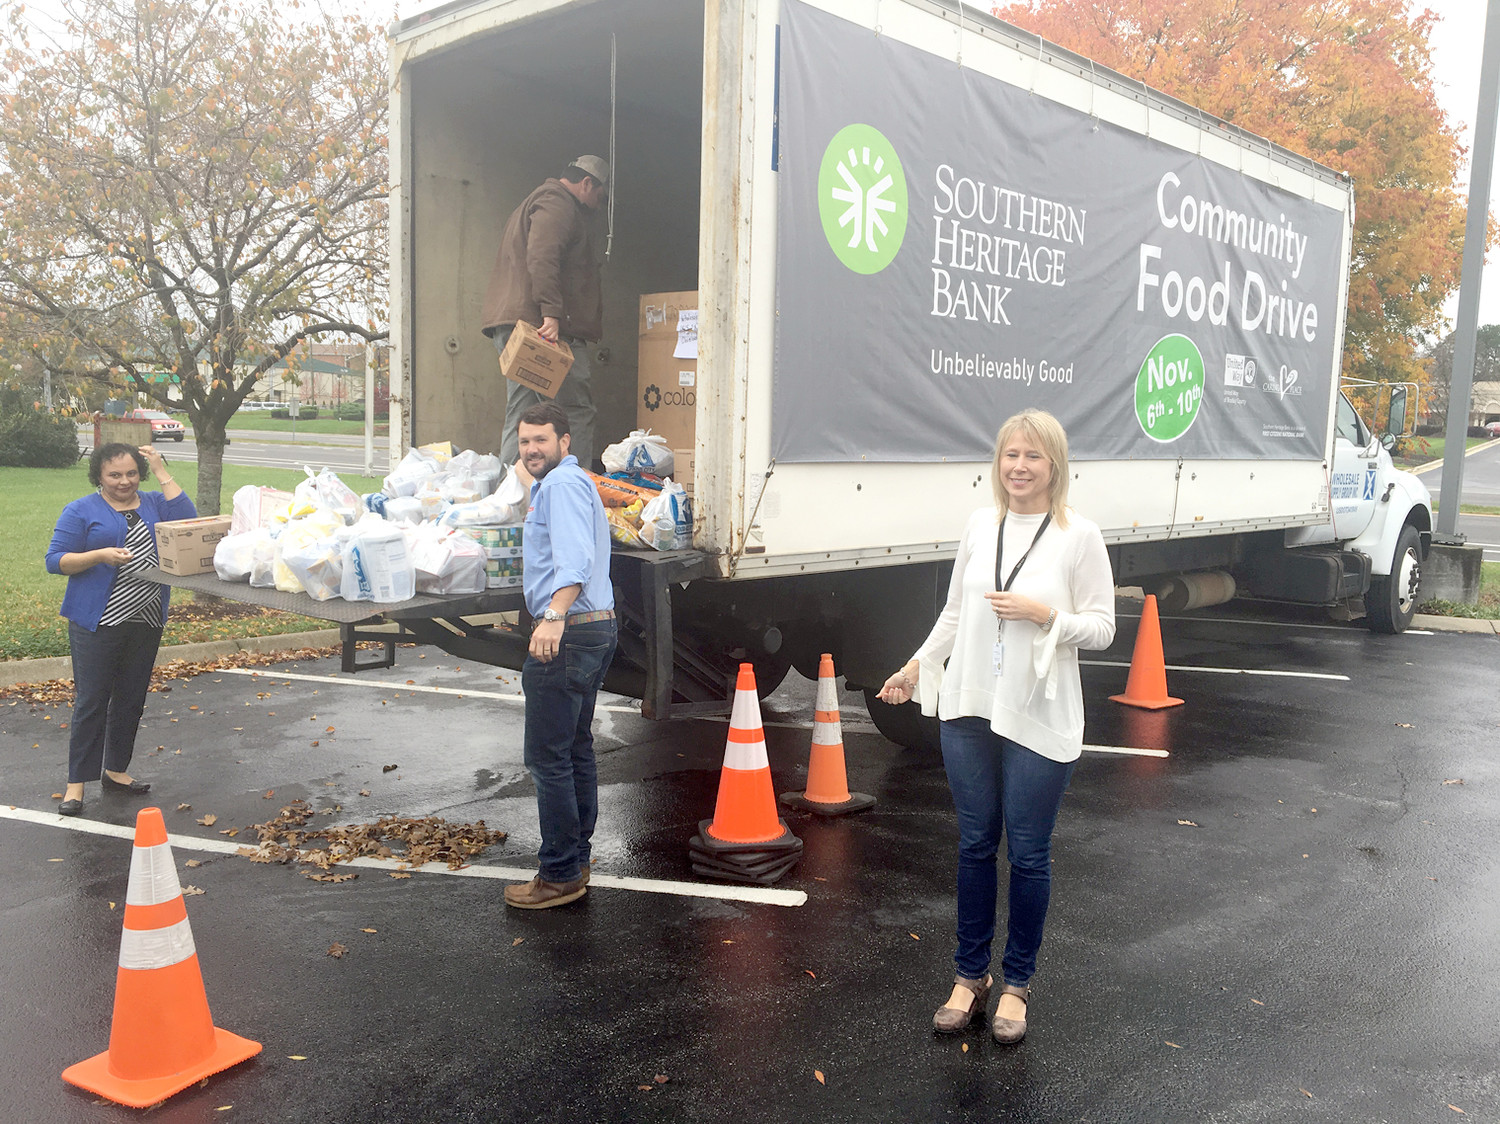 CLEVELAND UTILITIES  food drive donations are delivered by Maribel Ware, Paul Harvey and Deanna Hitch.